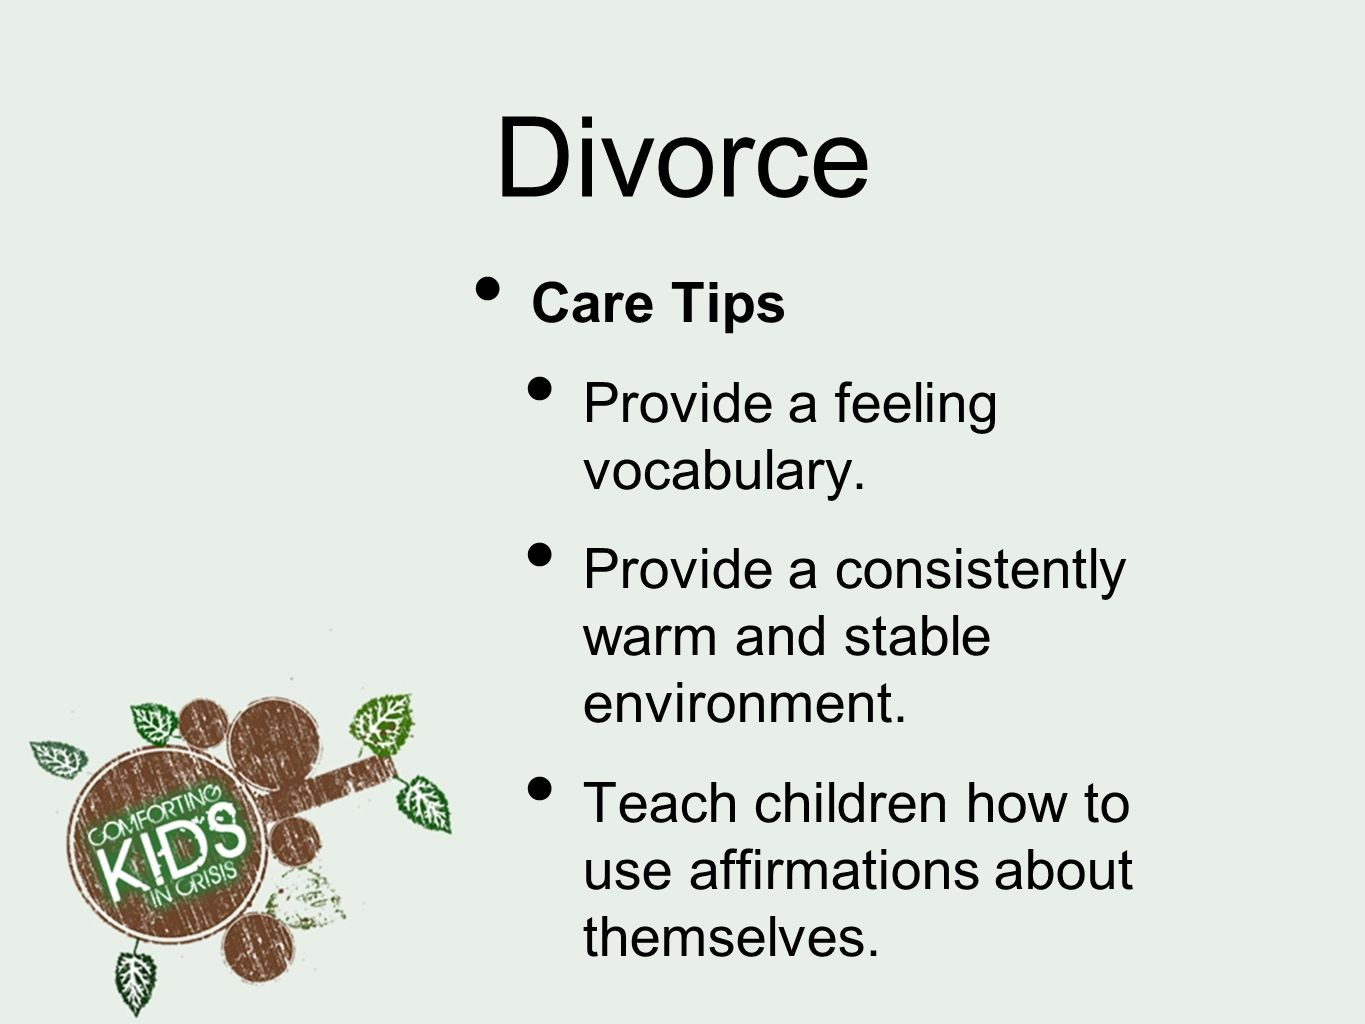 Divorce Care Tips Provide a feeling vocabulary. Provide a consistently warm and stable environment. Teach children how to use affirmations about thems